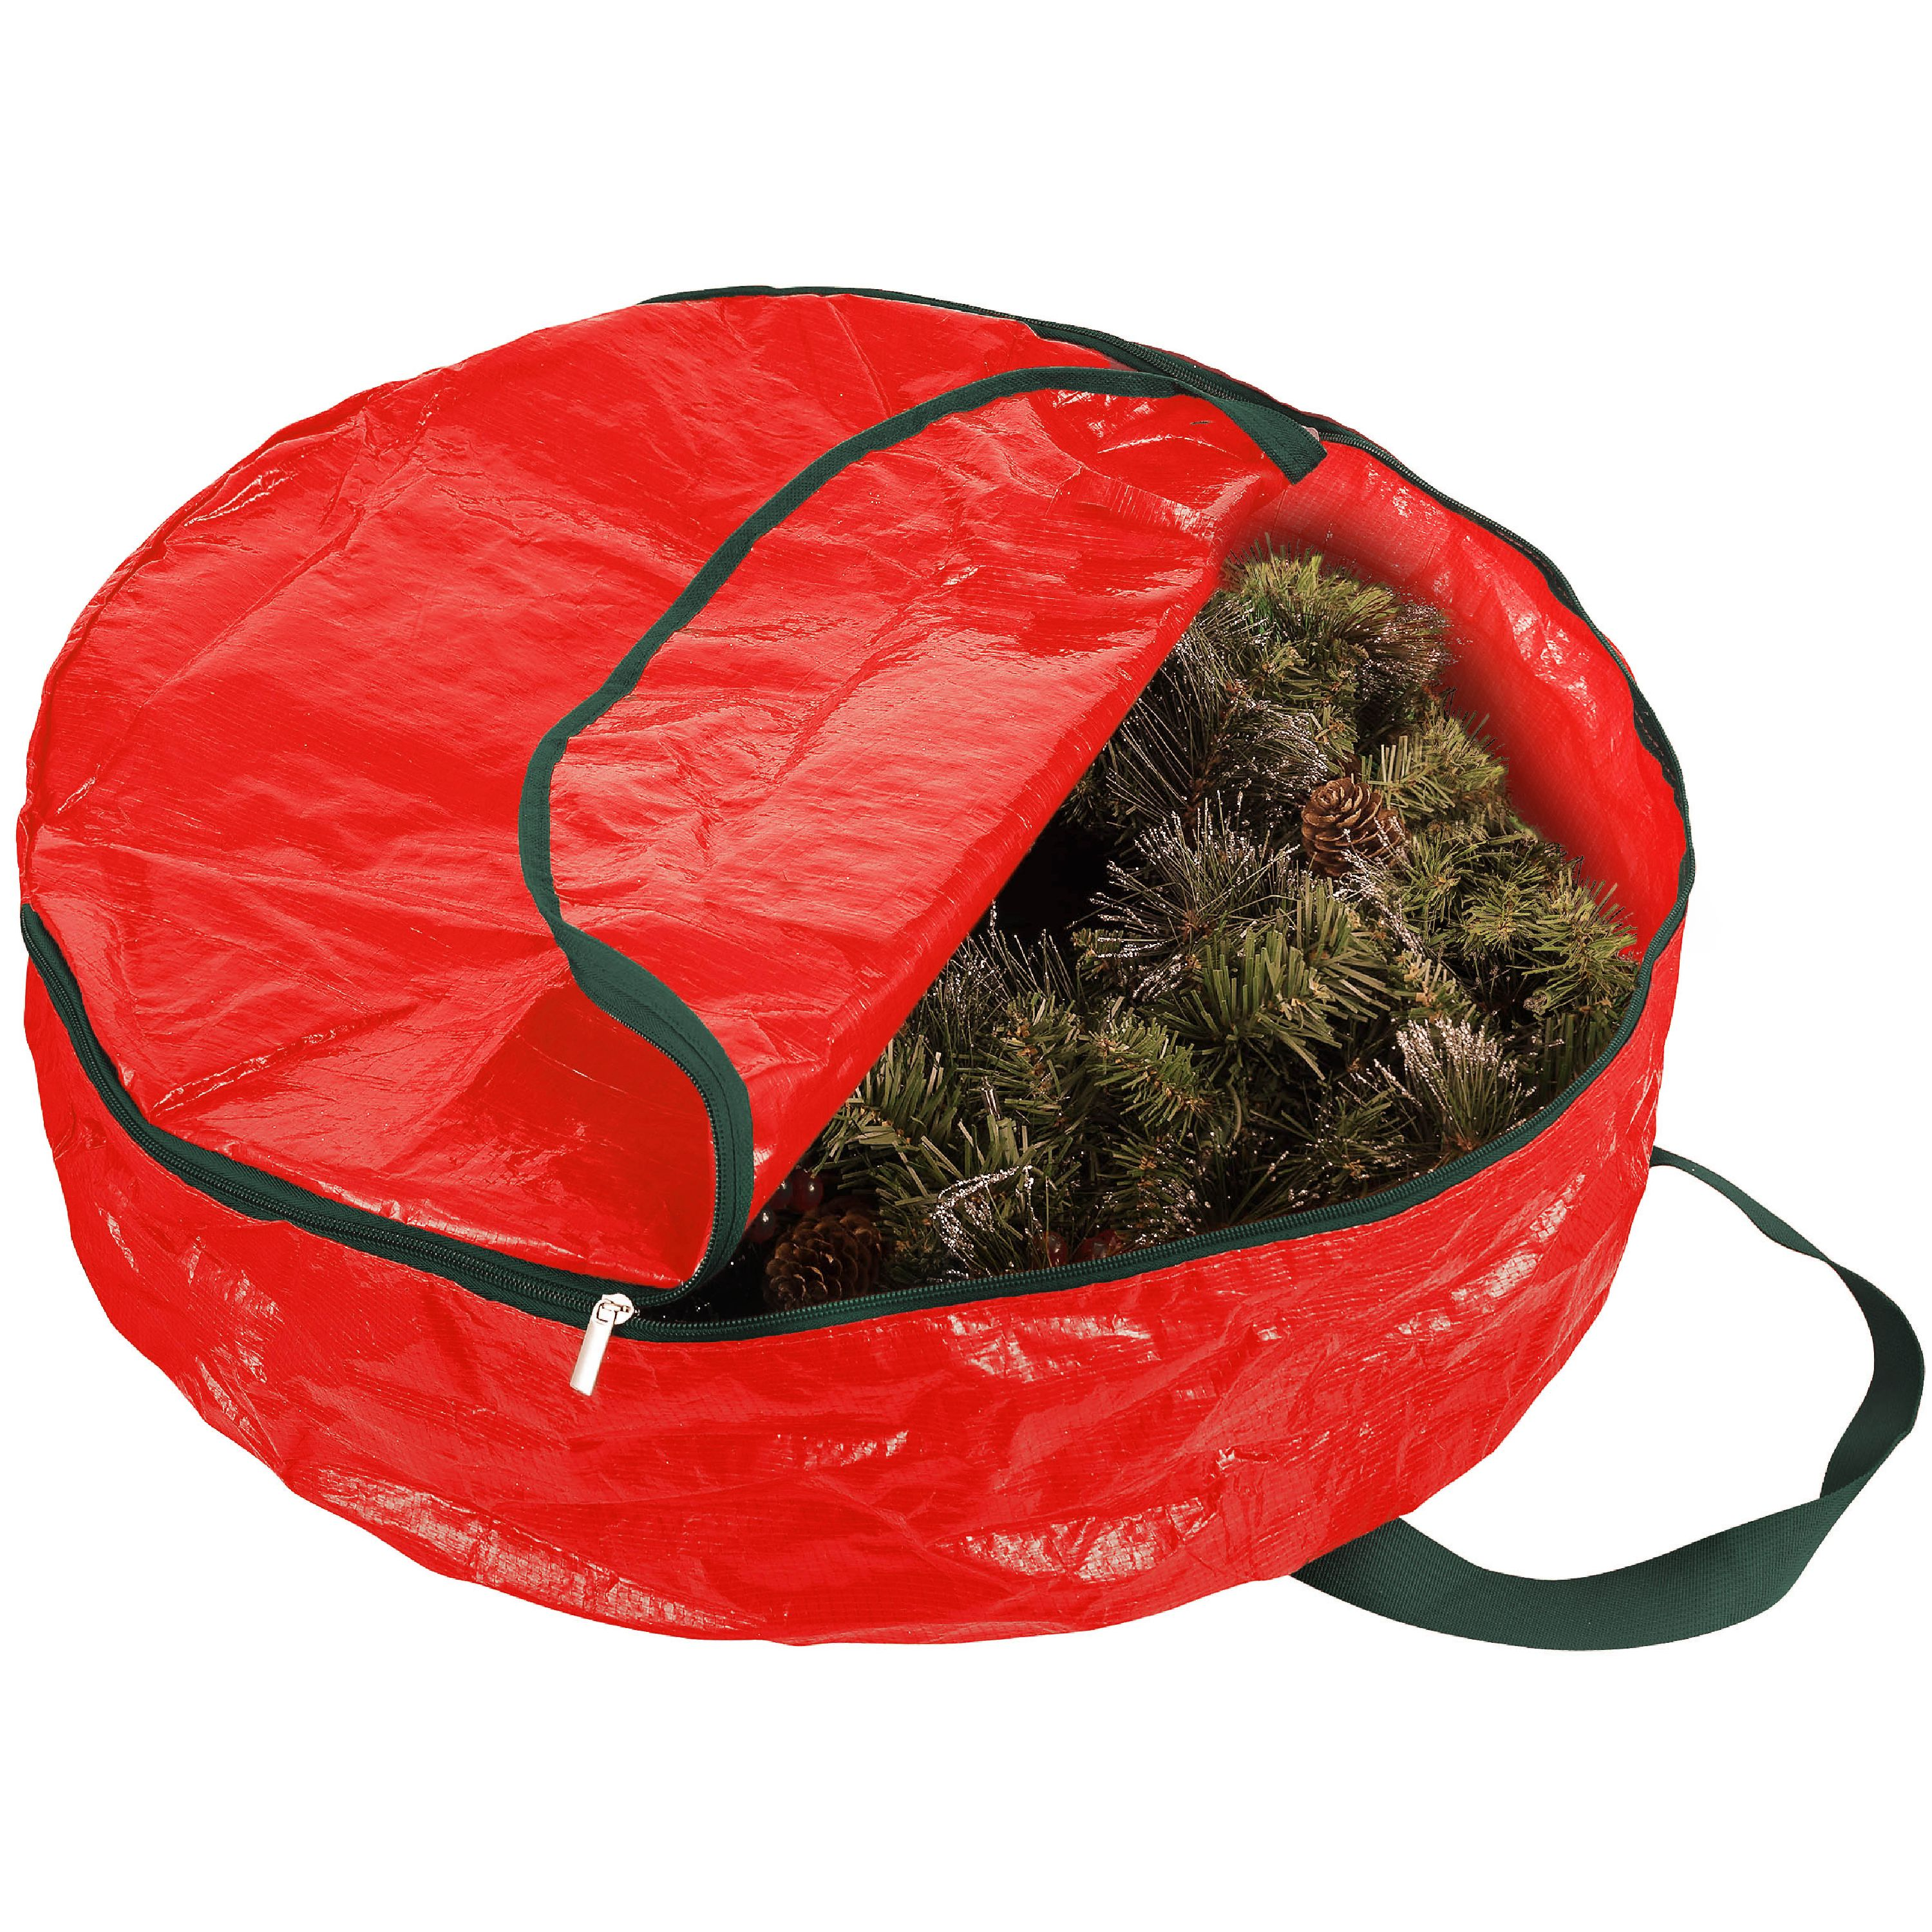 Zober Christmas Wreath Storage Bag - 30 X 30 X 8 in. With Tear Resistant Material, Featuring Transparent Card Slot - Red